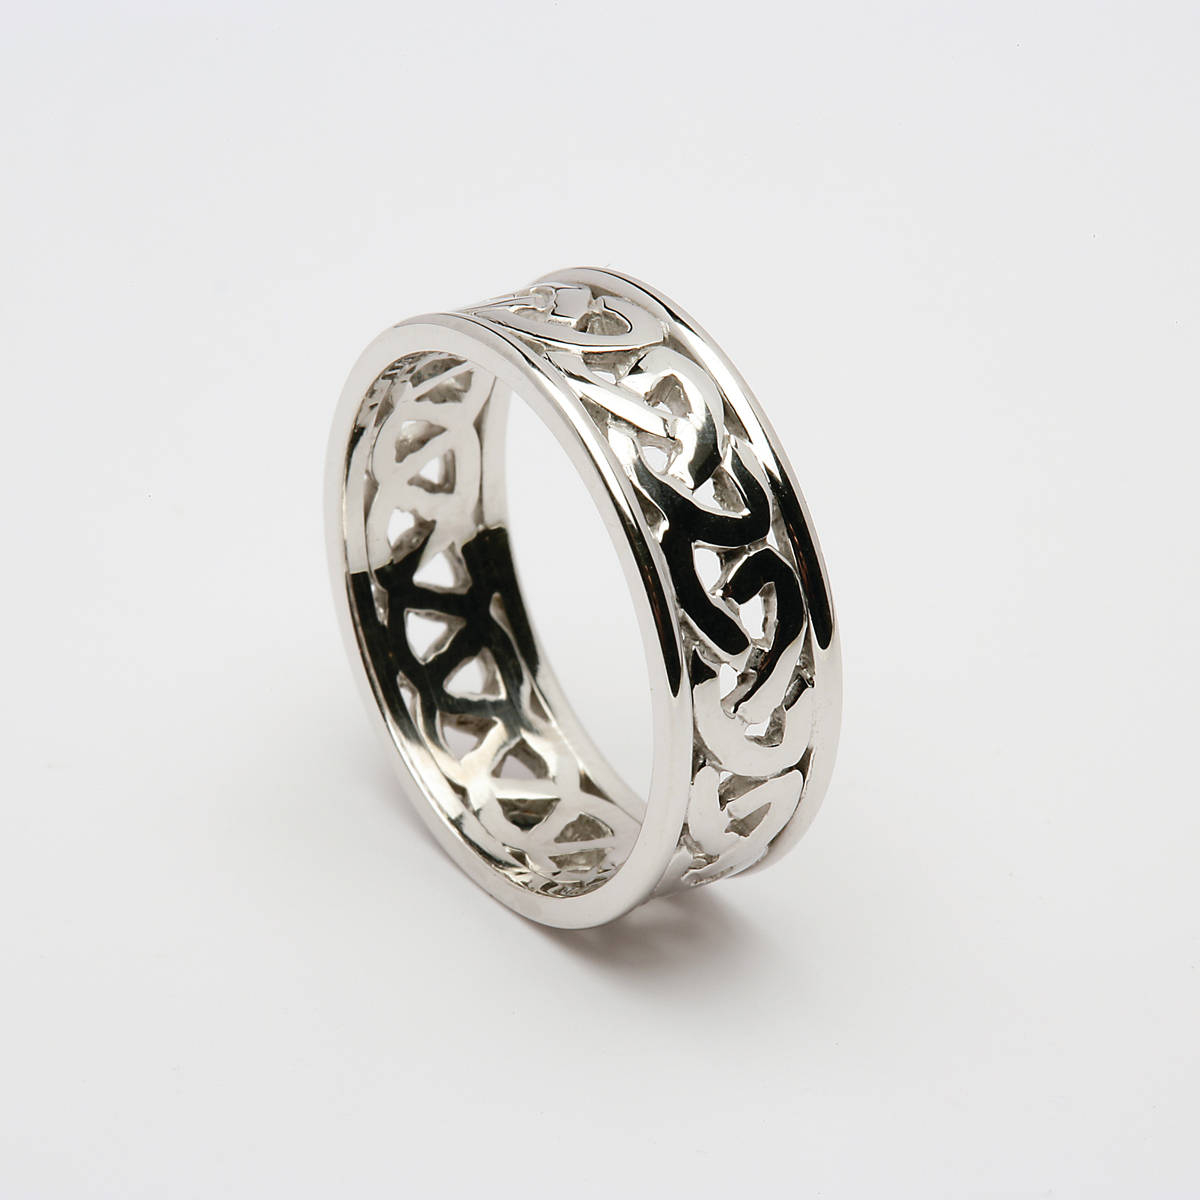 14 carat white gold unisex Celtic open knot wedding ring with light 14 carat white gold rims.7.3mm